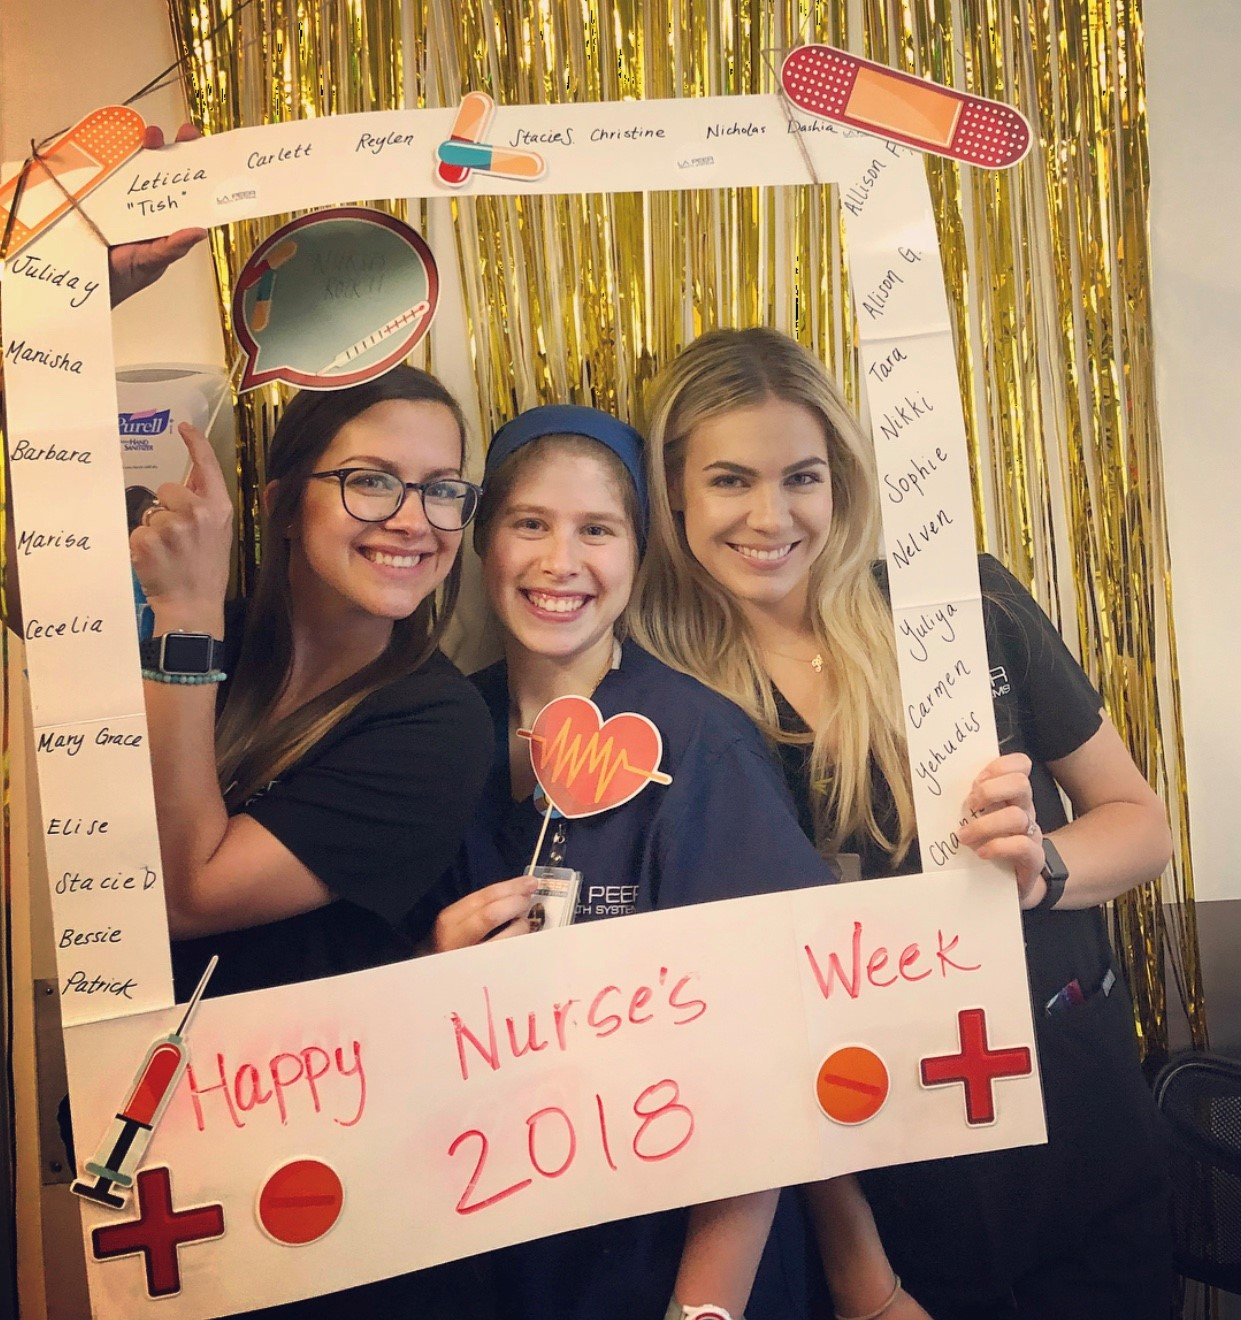 Nurses Week 2018 at la Peer Surgery Center